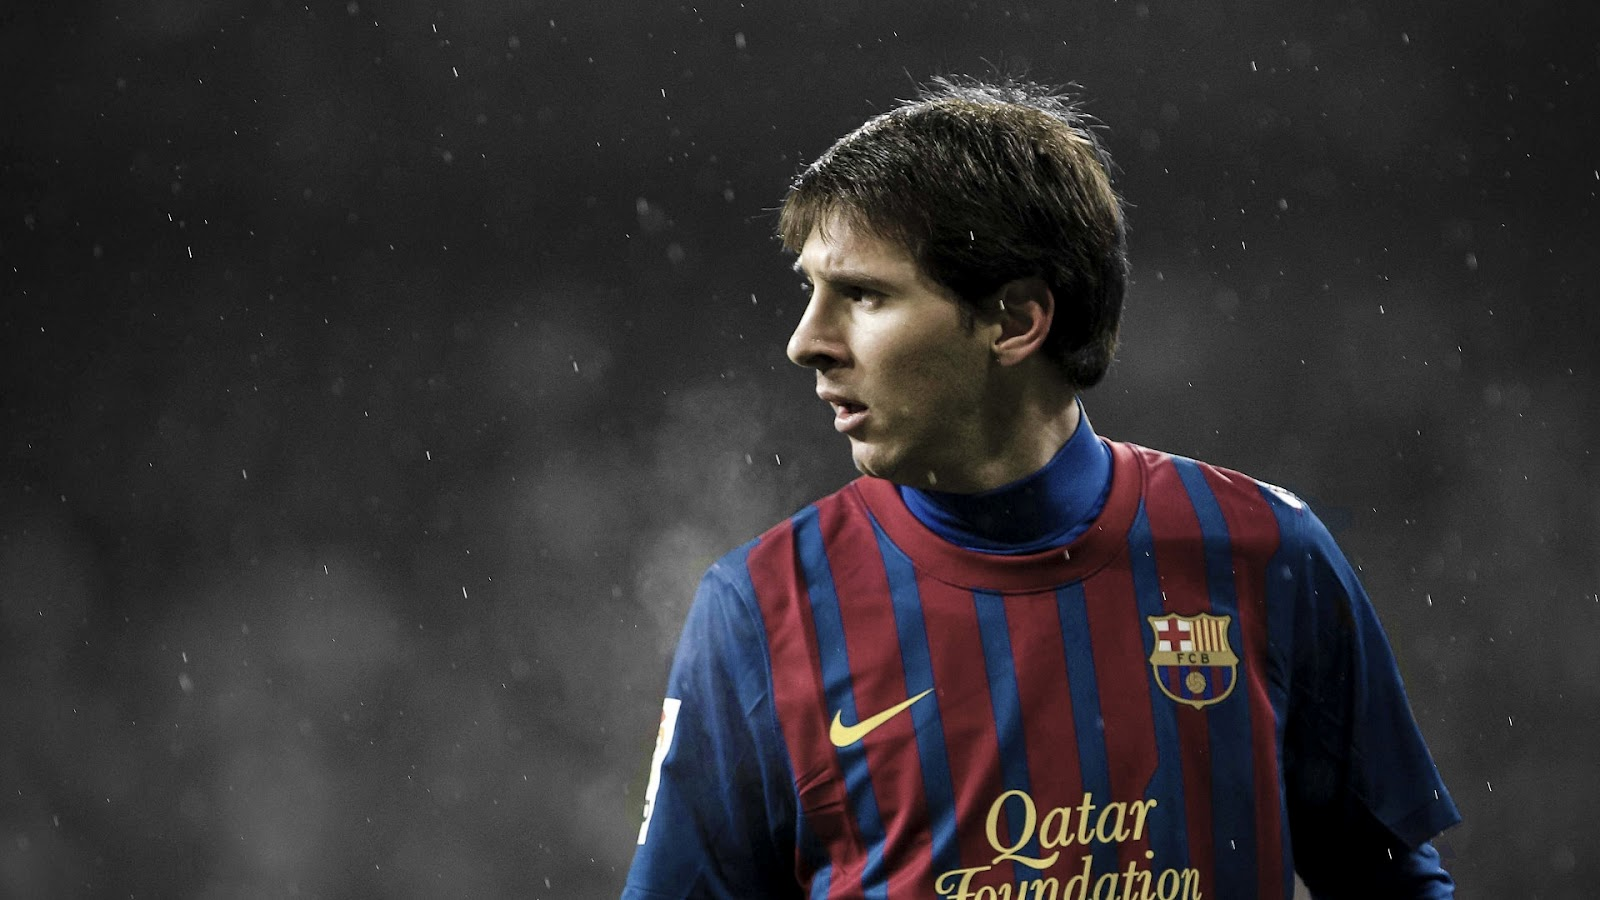 Football Wallpapers Lionel Messi HD Wallpapers 1600x900